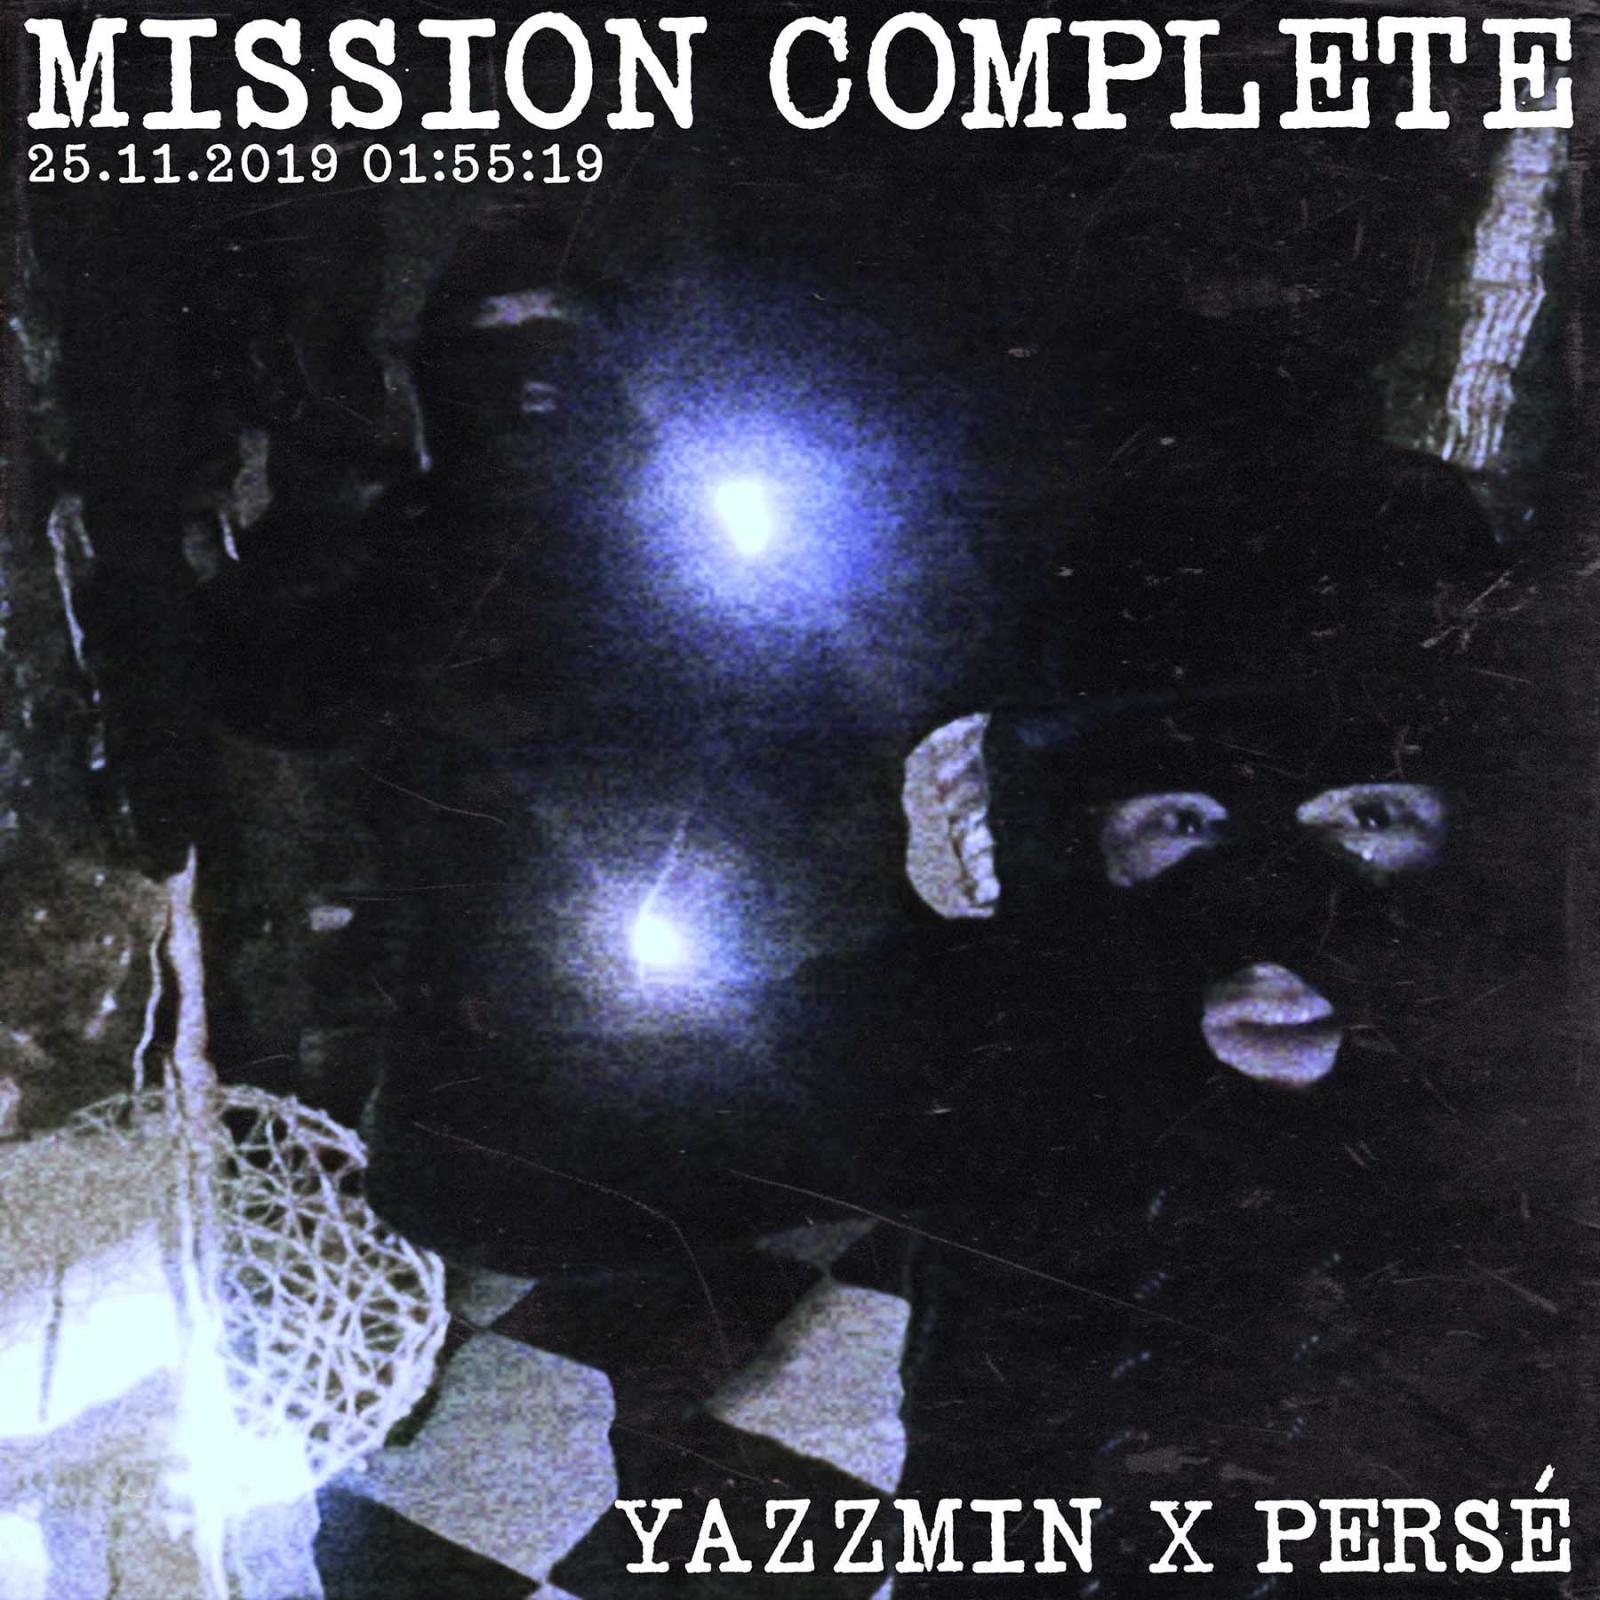 Upcoming: Yazzmin & Persé - Mission Complete [Audio]